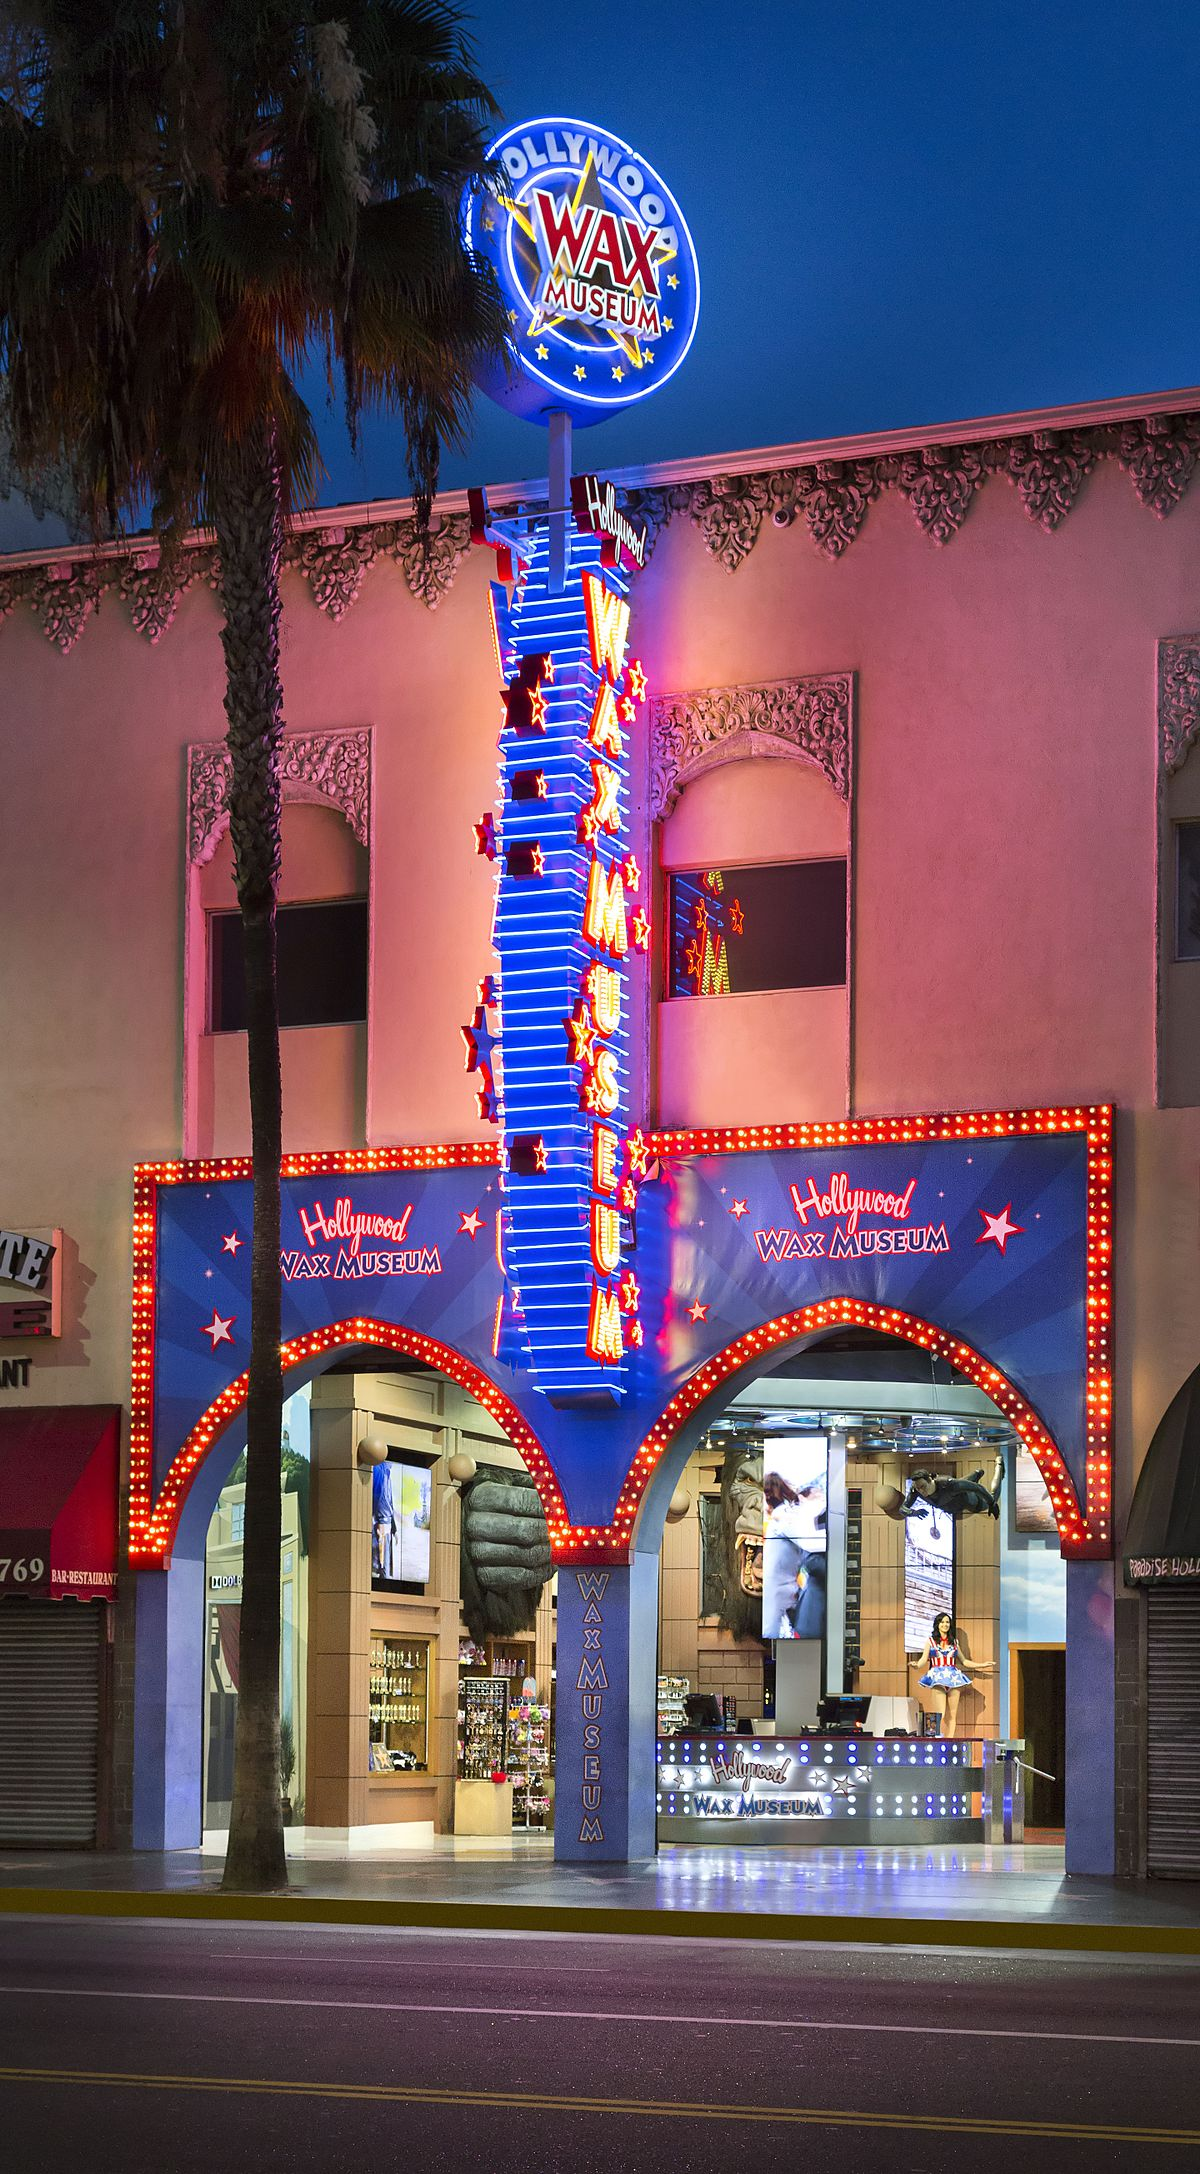 Hollywood Wax Museum - Wikipedia